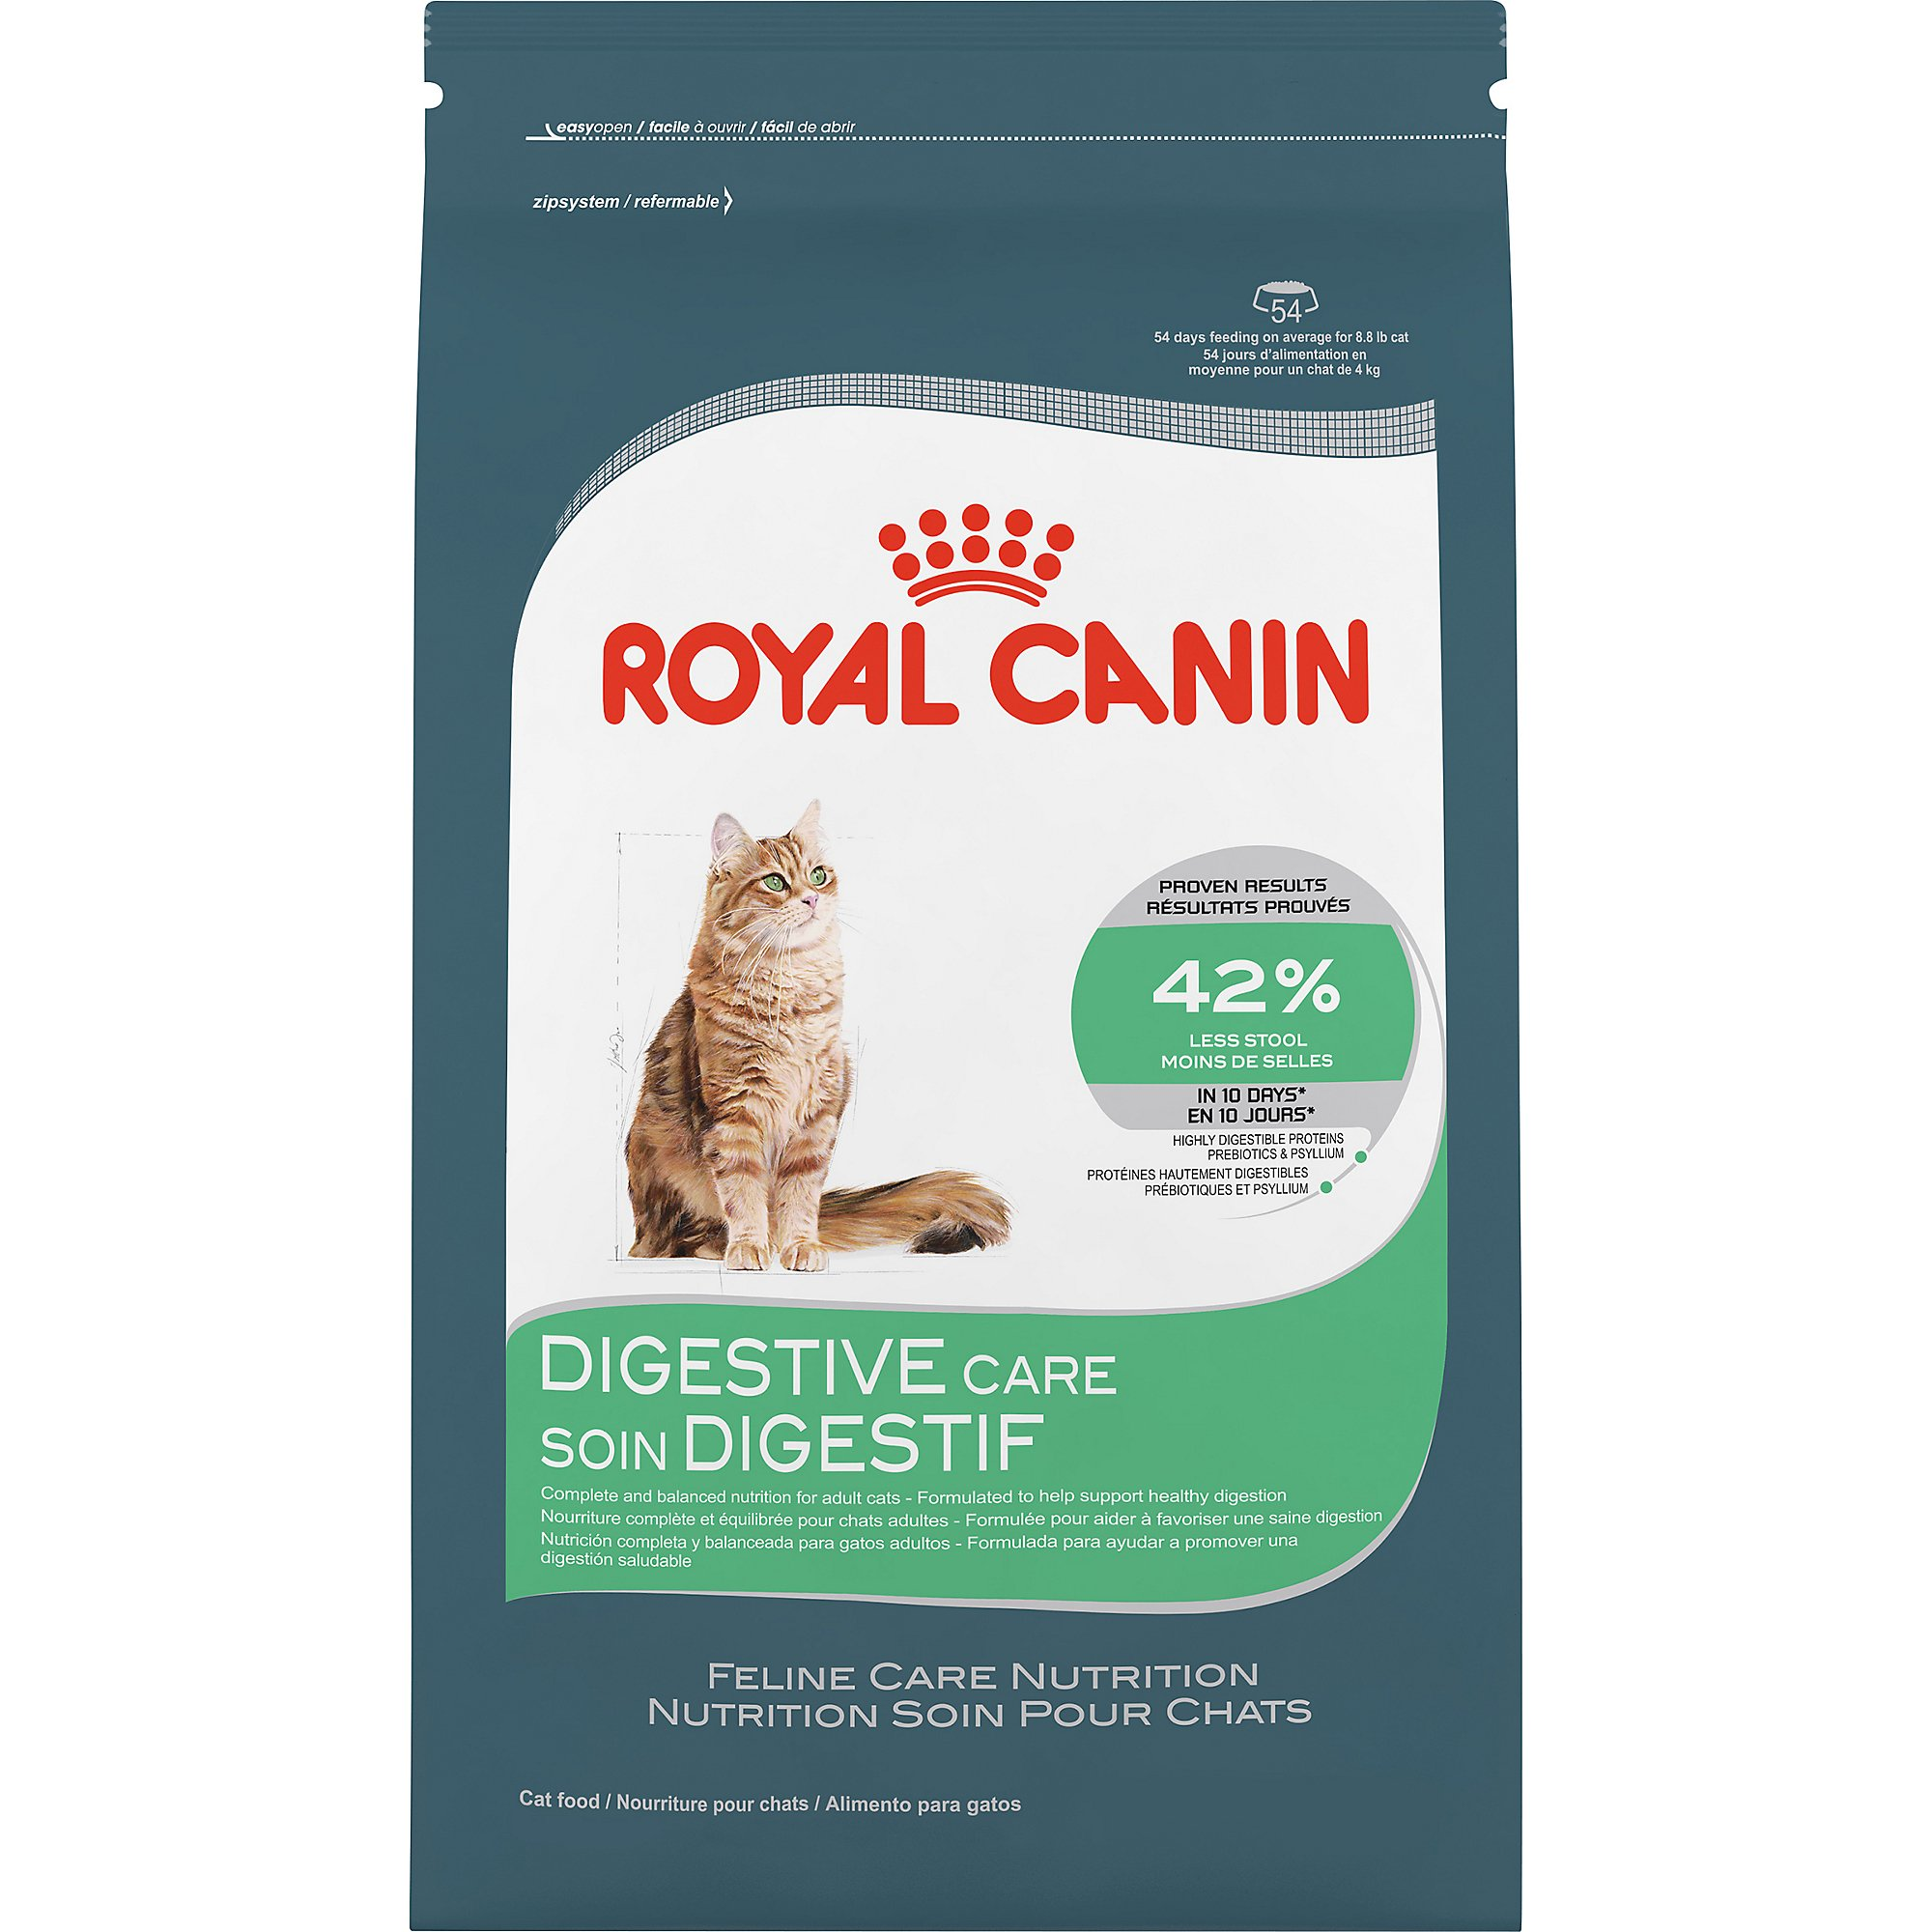 royal canin feline care nutrition digestive care adult dry. Black Bedroom Furniture Sets. Home Design Ideas